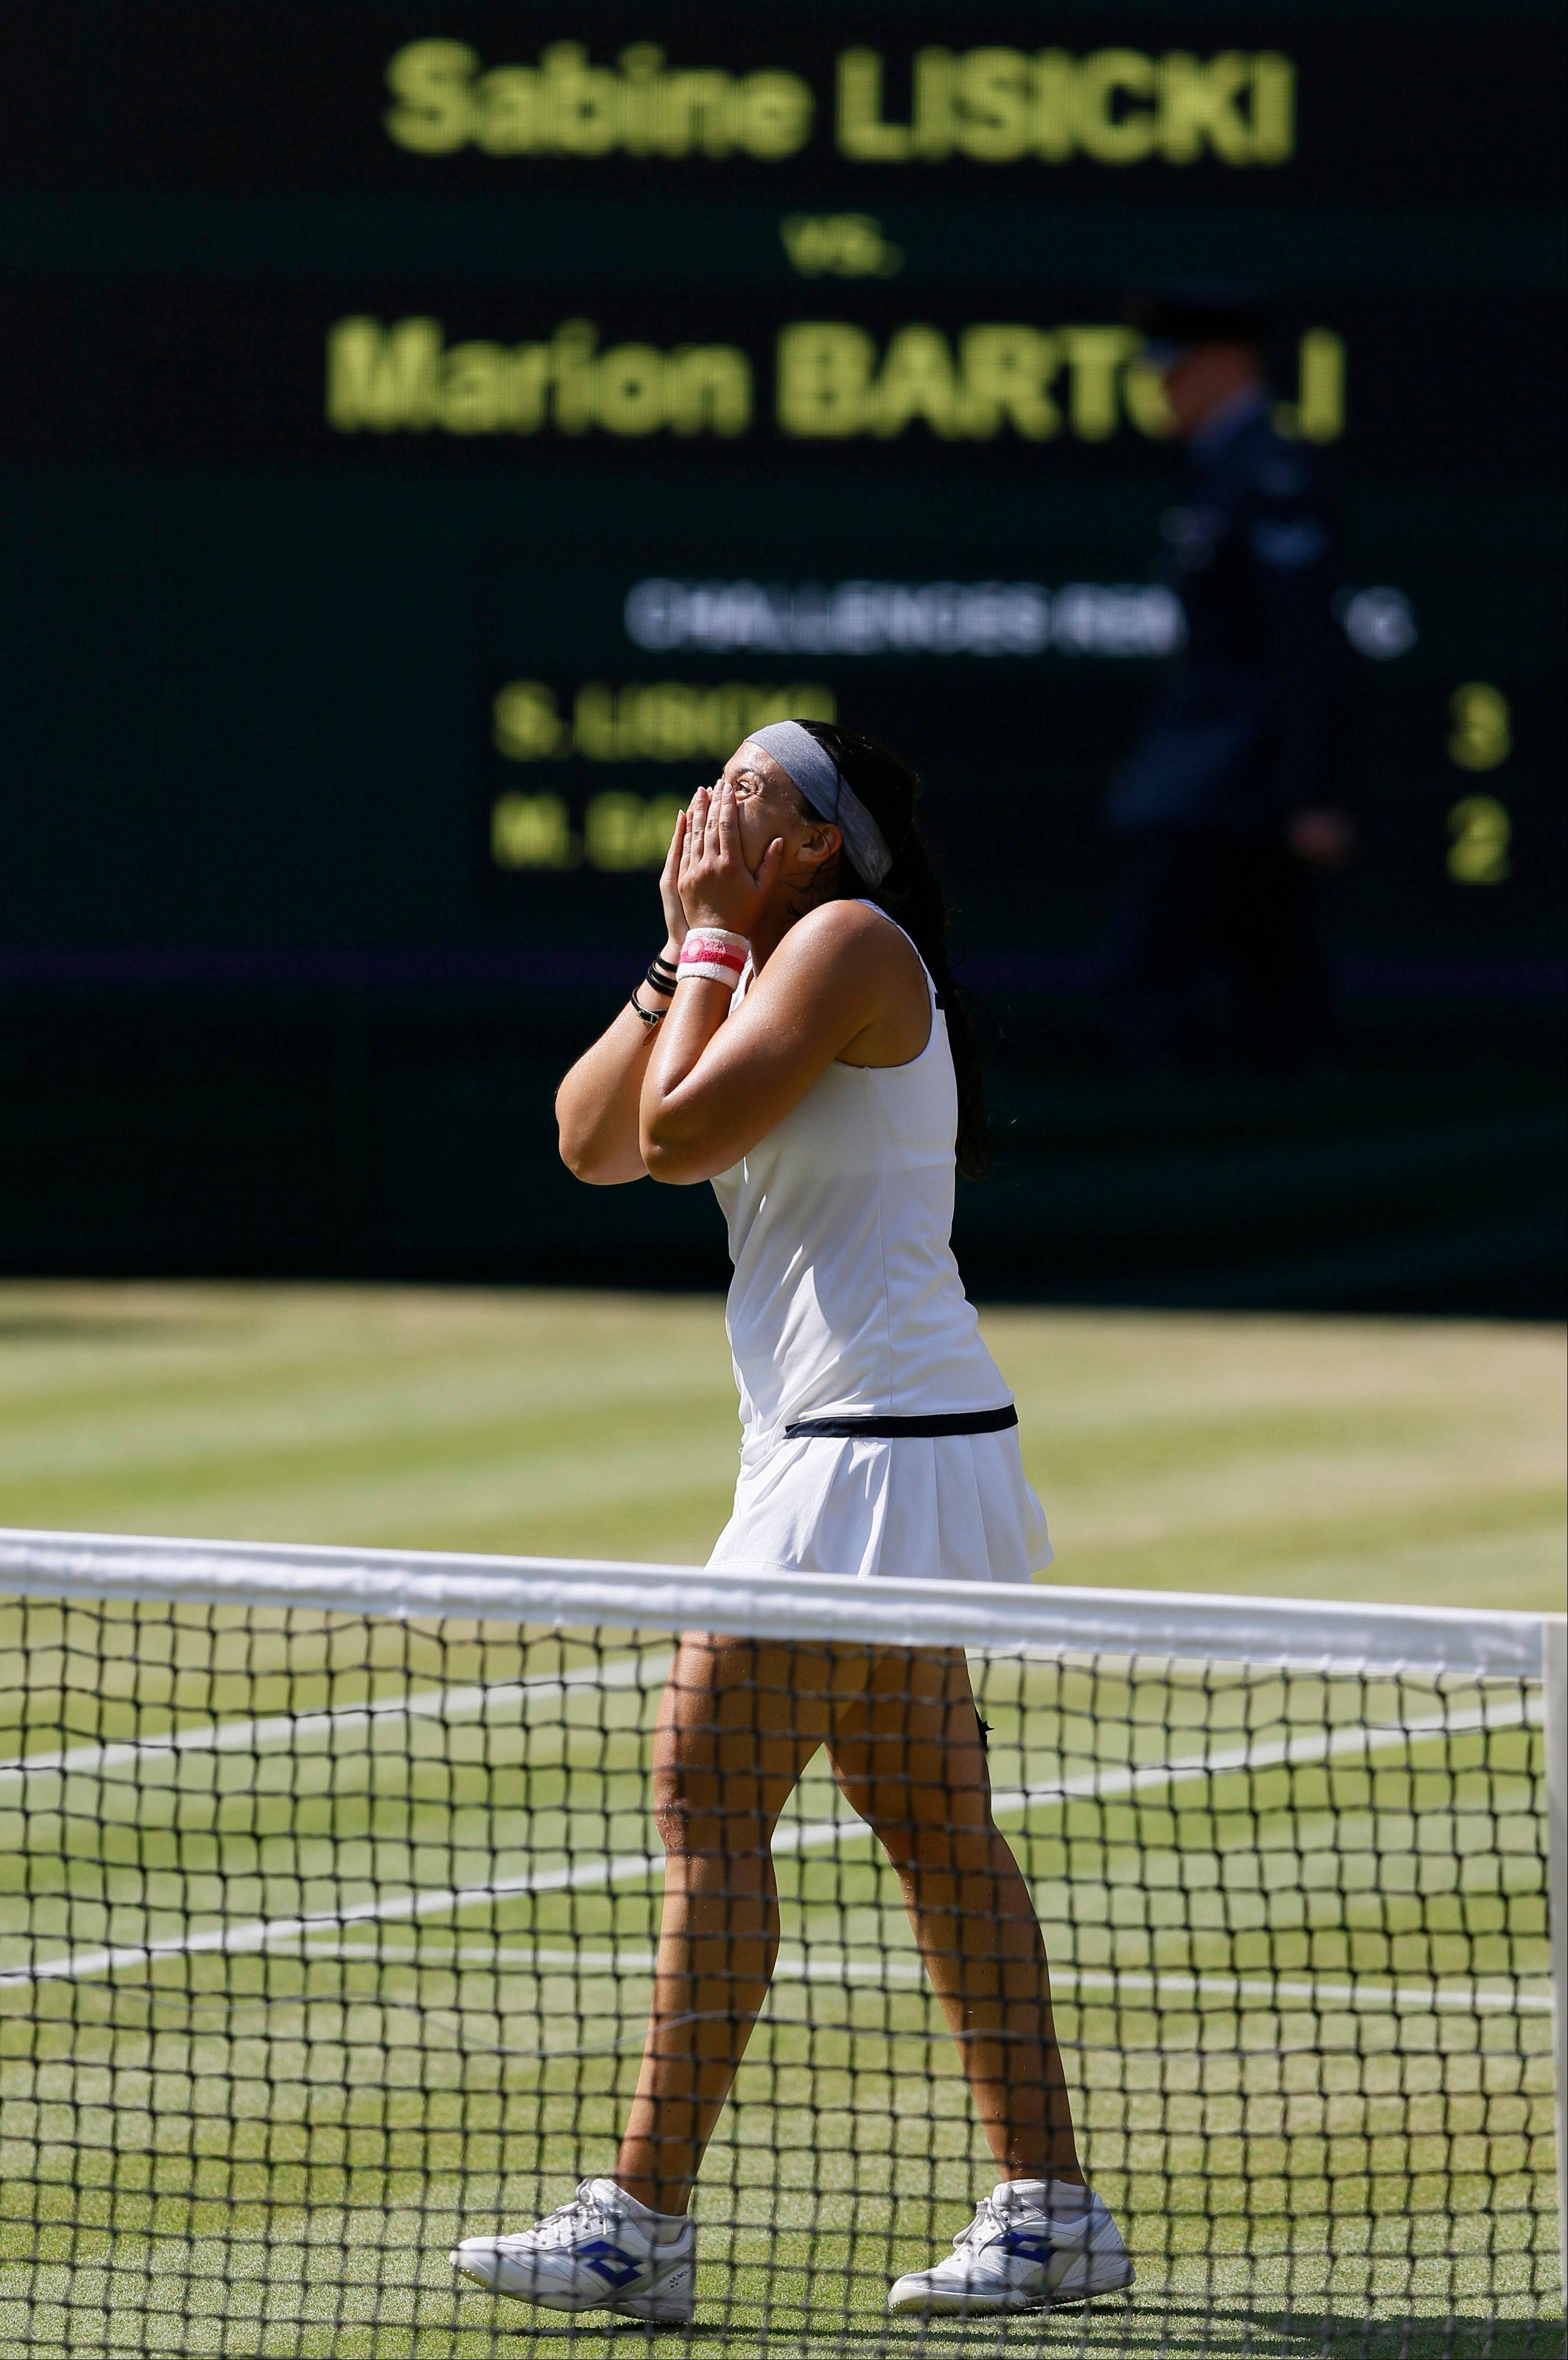 Marion Bartoli of France reacts as she wins the Women's singles final match against Sabine Lisicki of Germany at the All England Lawn Tennis Championships in Wimbledon, London, Saturday, July 6.